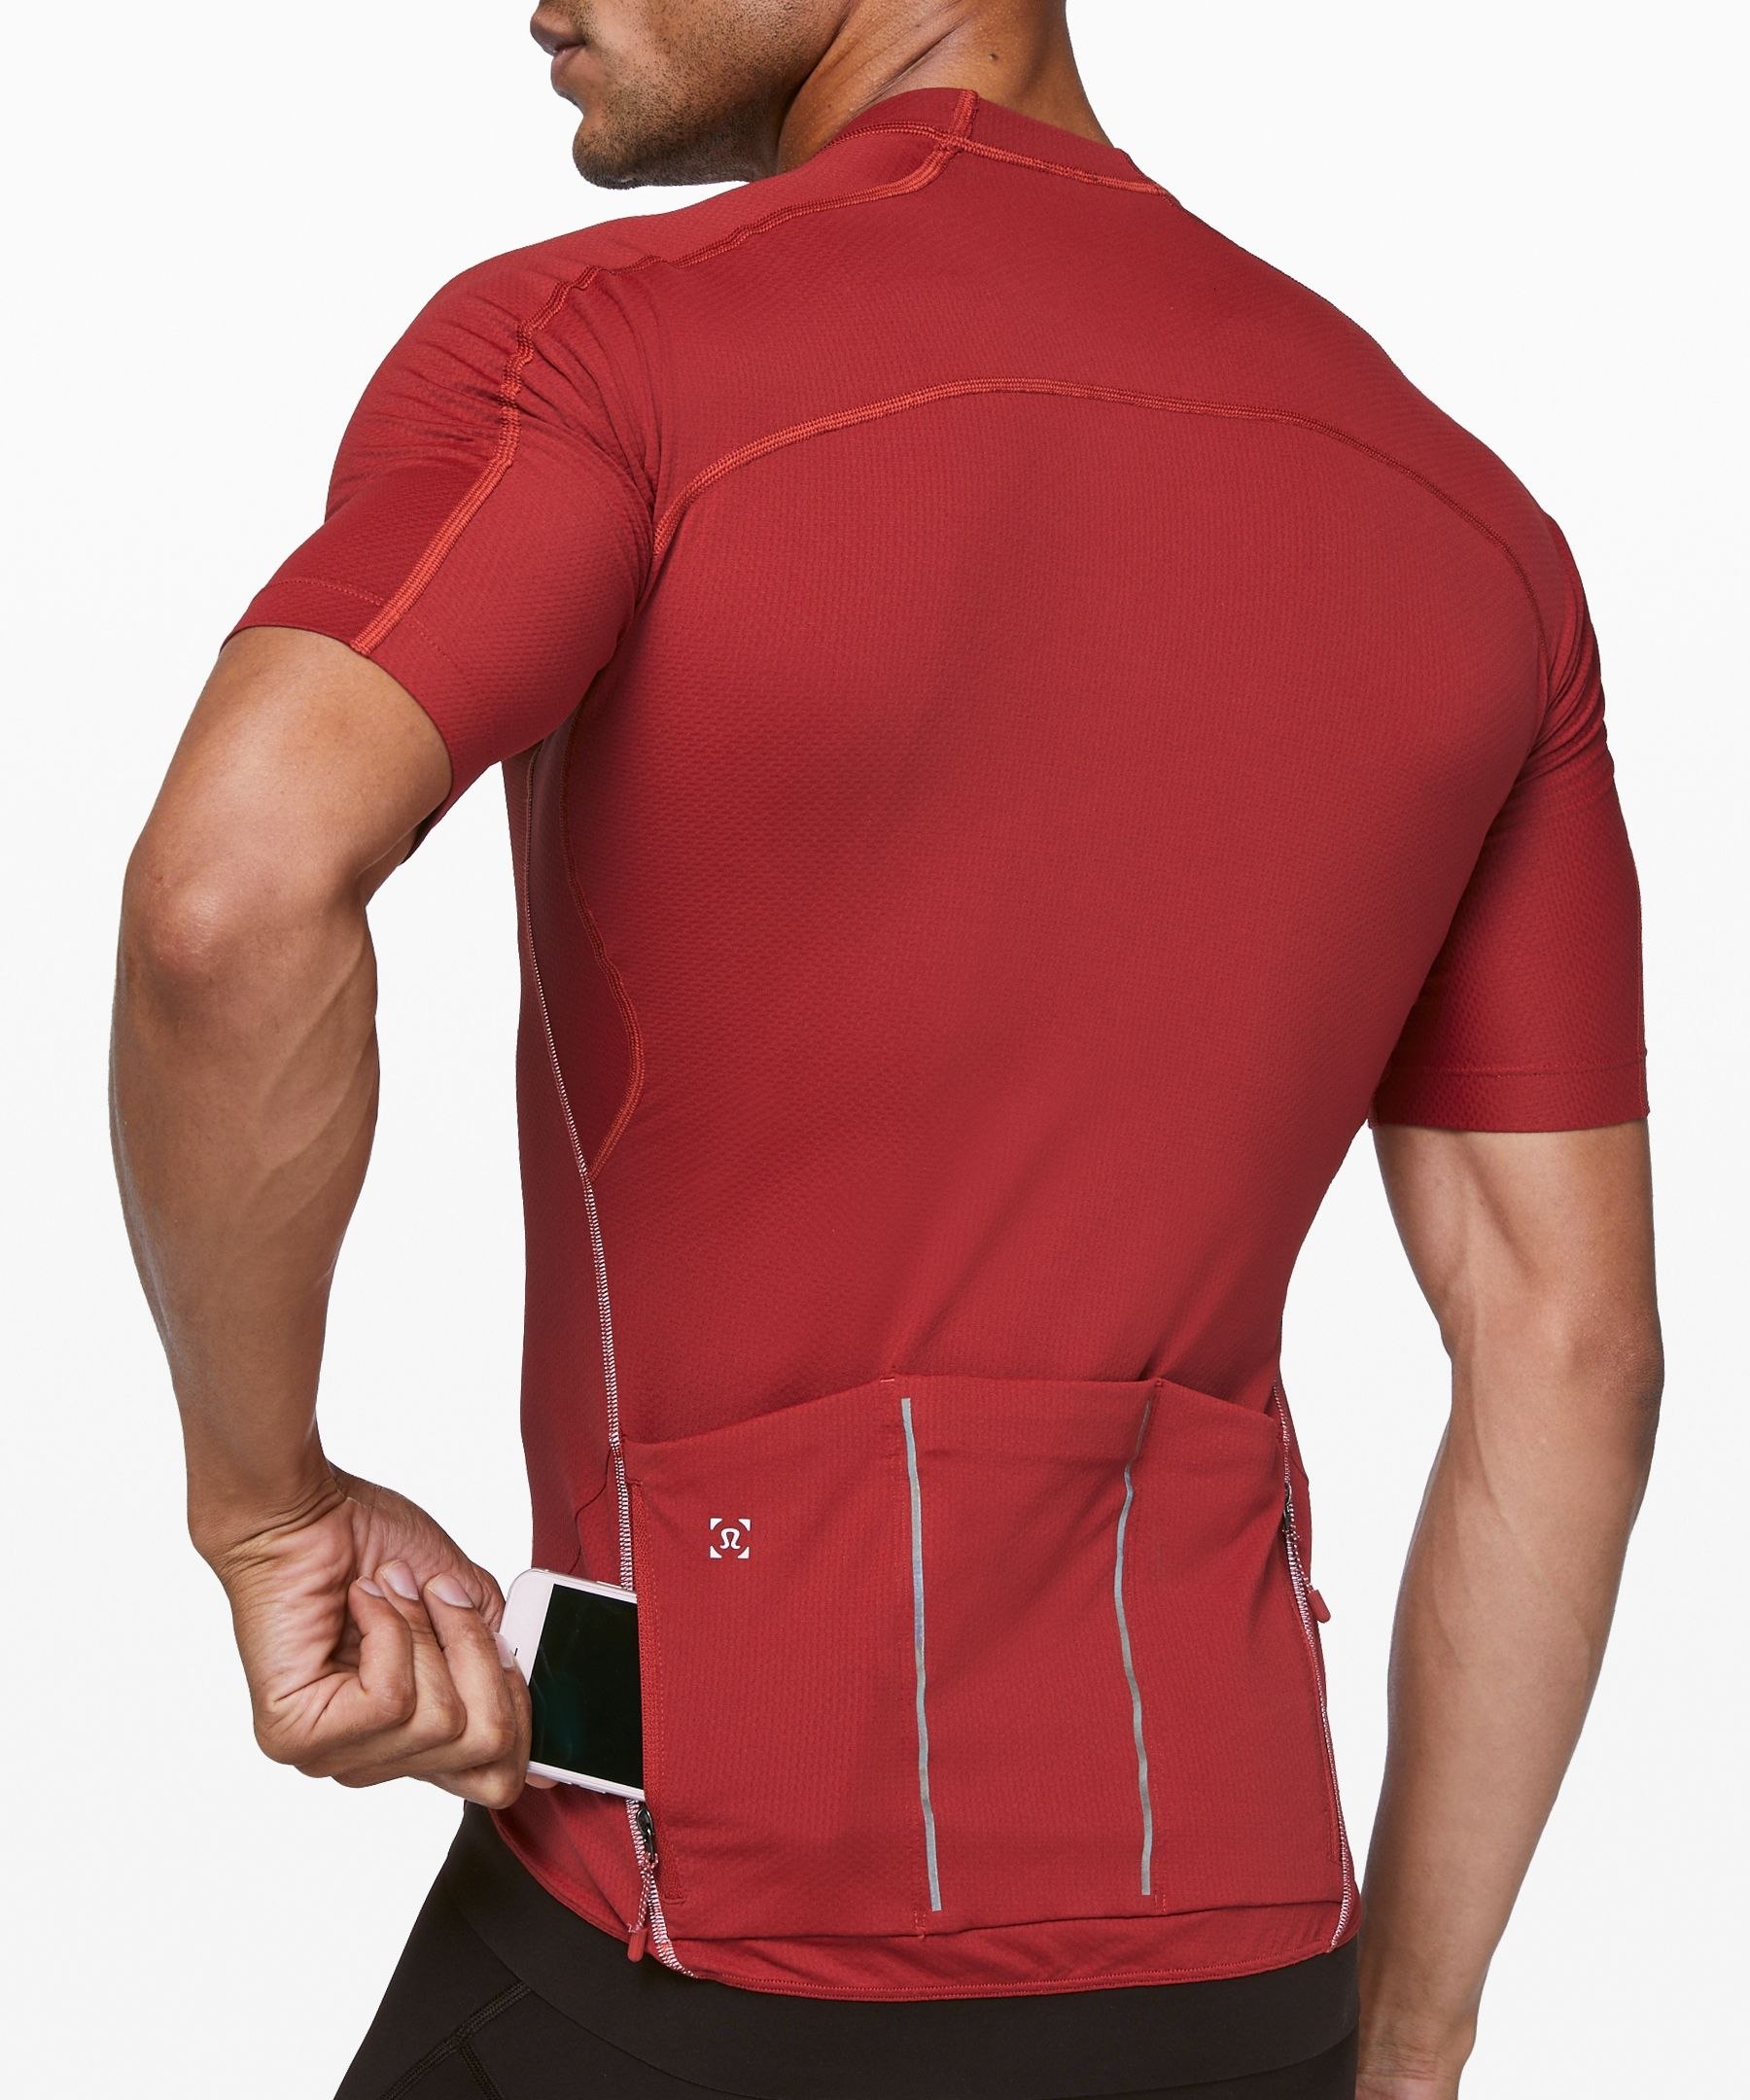 City To Summit Cycling Jersey Men S Short Sleeve Tops Cycling Jersey Men Short Sleeves Tops Cycling Jersey